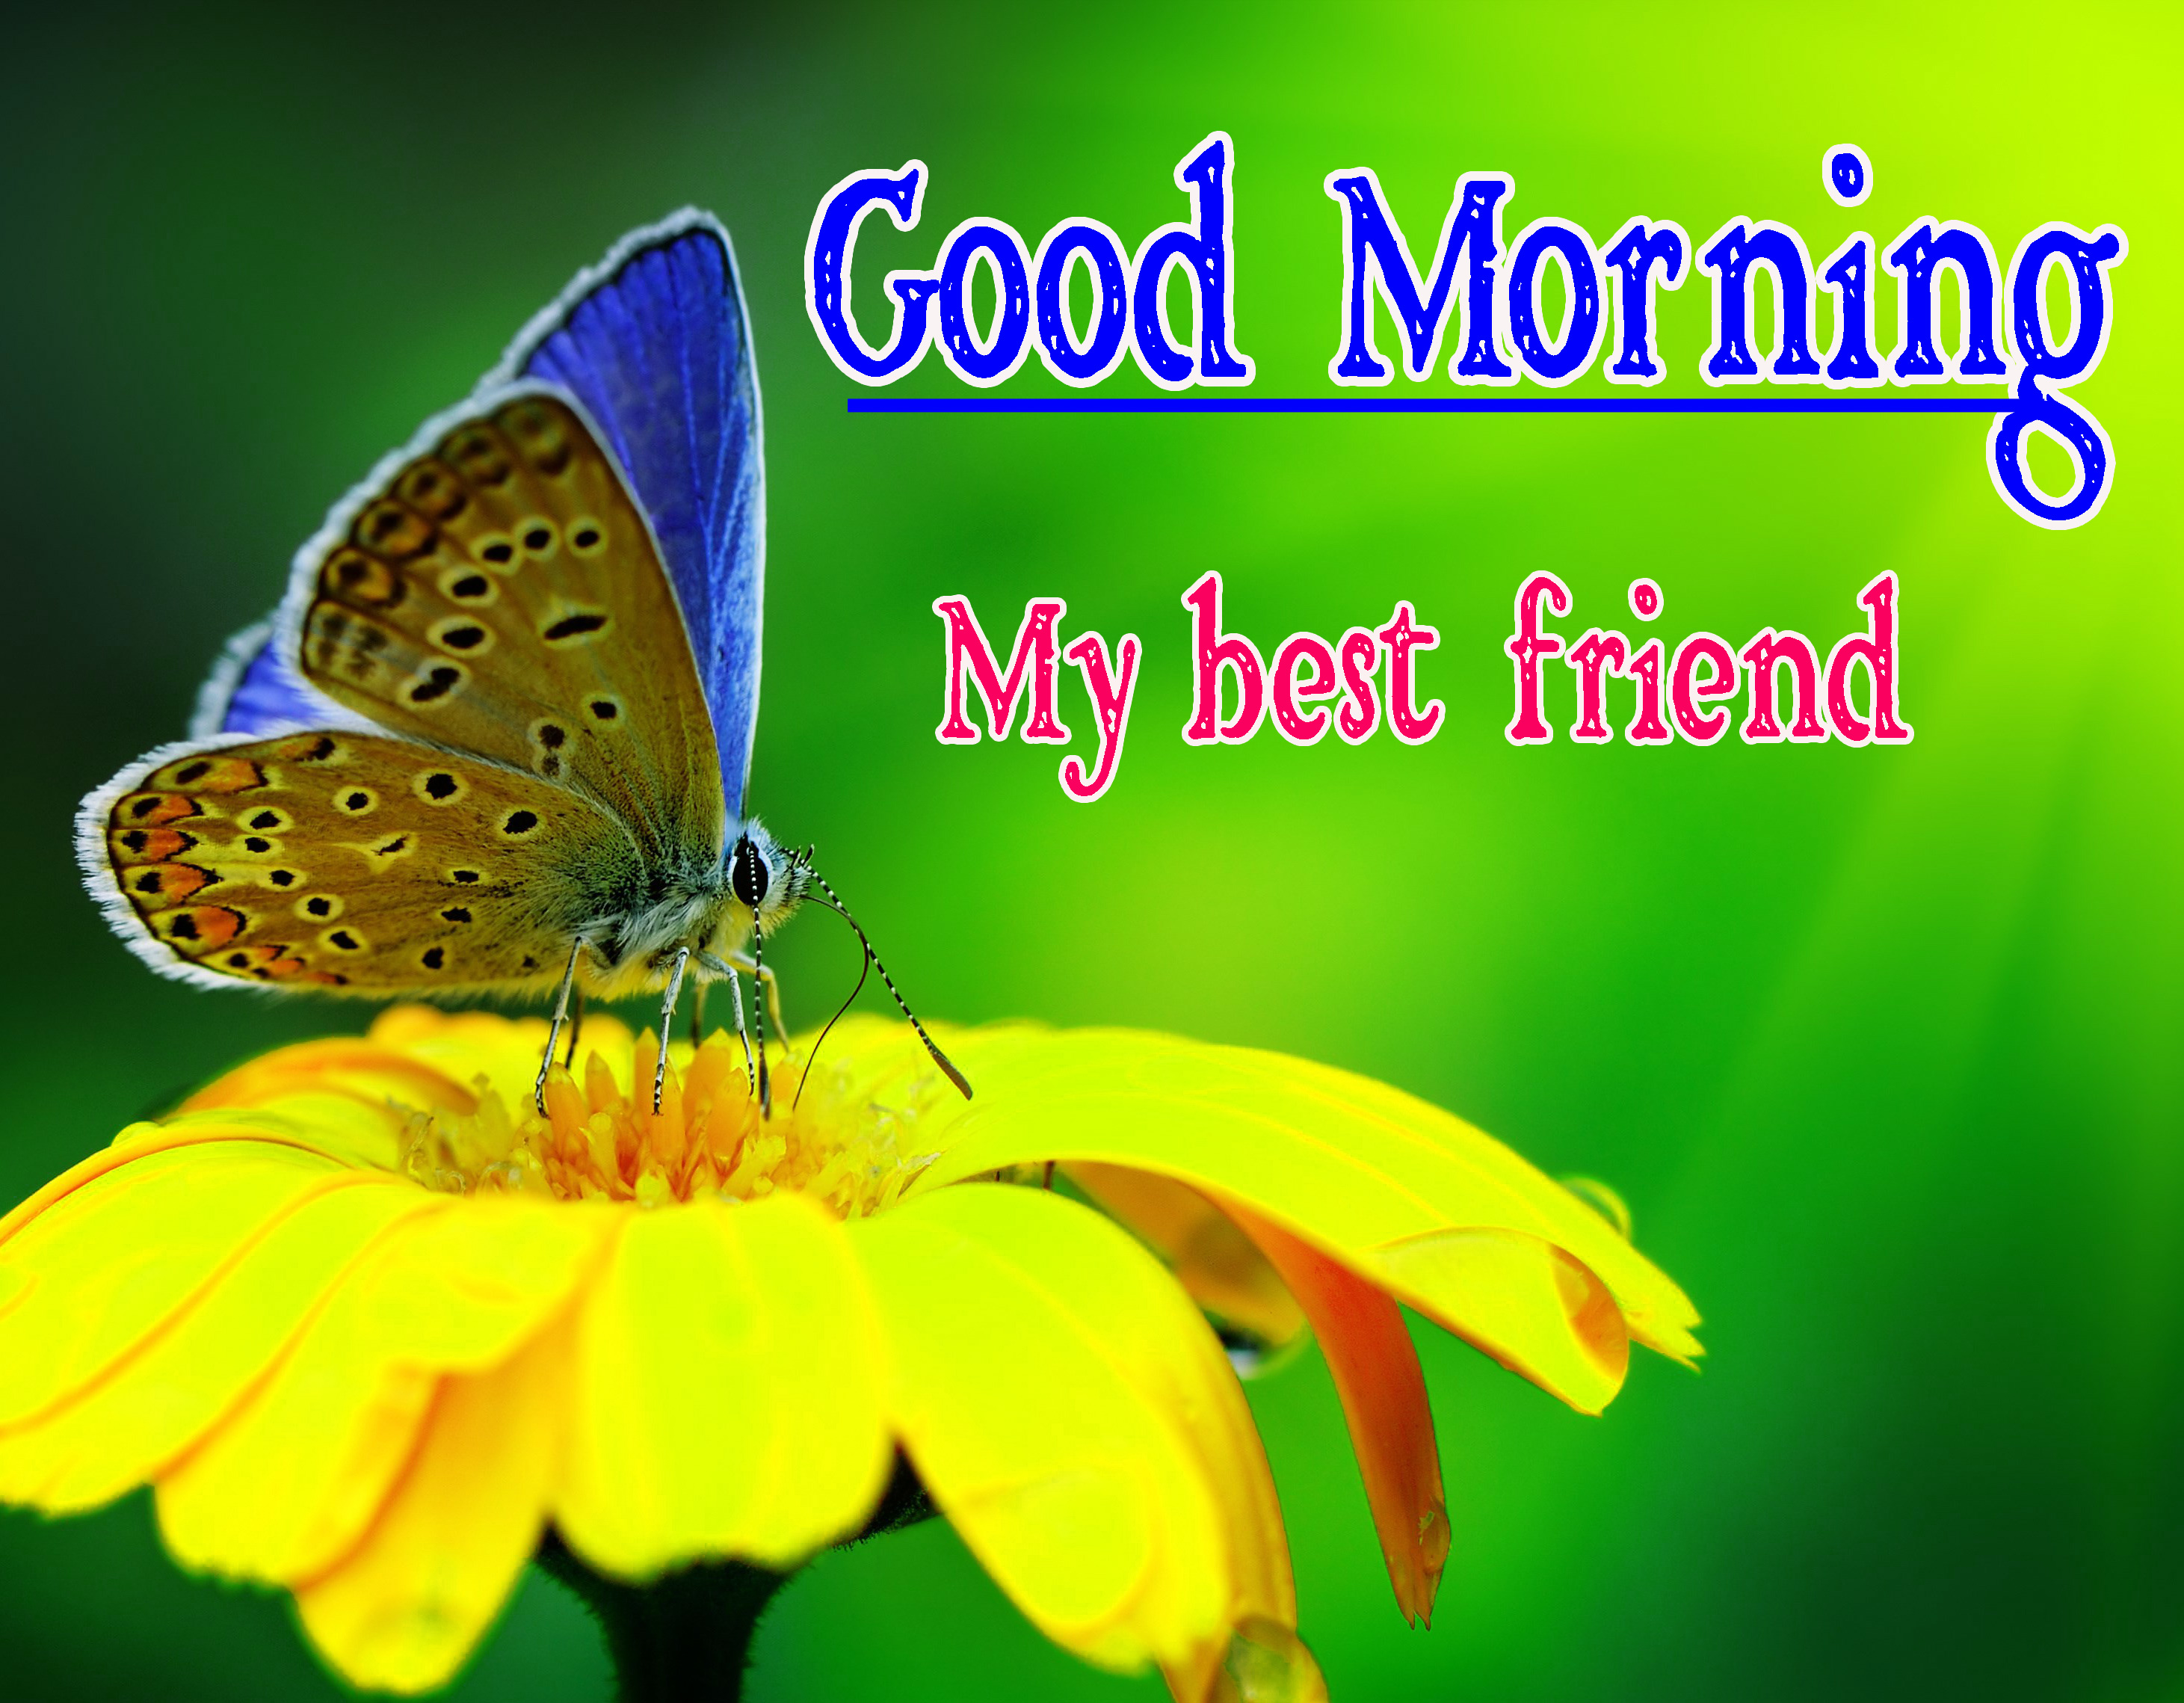 Best Friend Good Morning Images 35